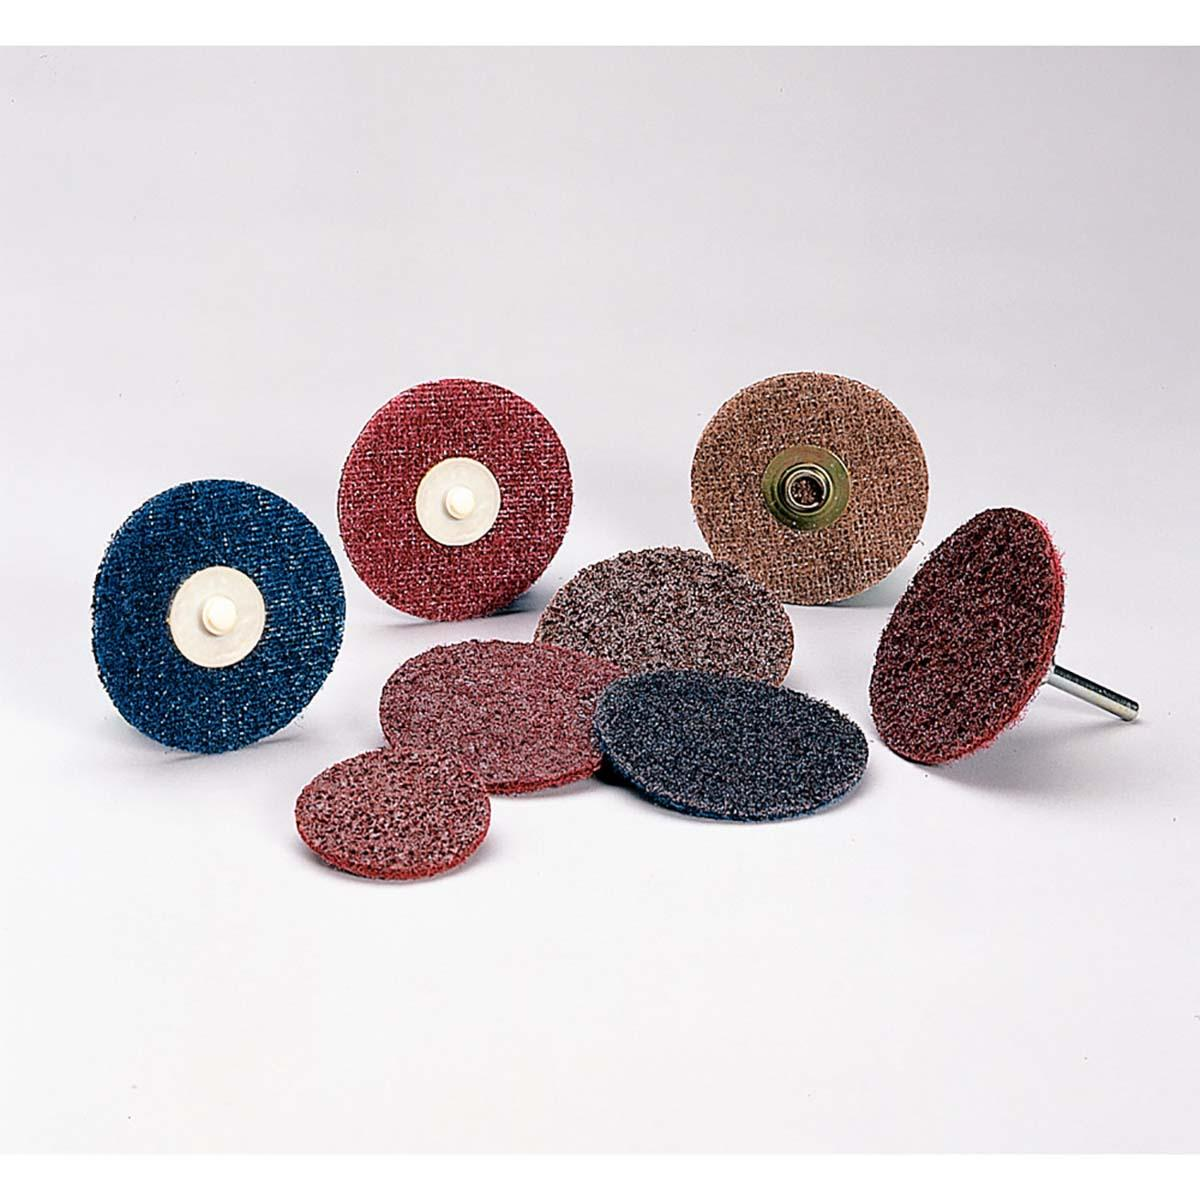 6 in A MED 8 Holes Standard Abrasives Buff and Blend Hook and Loop GP Vacuum Disc 831720